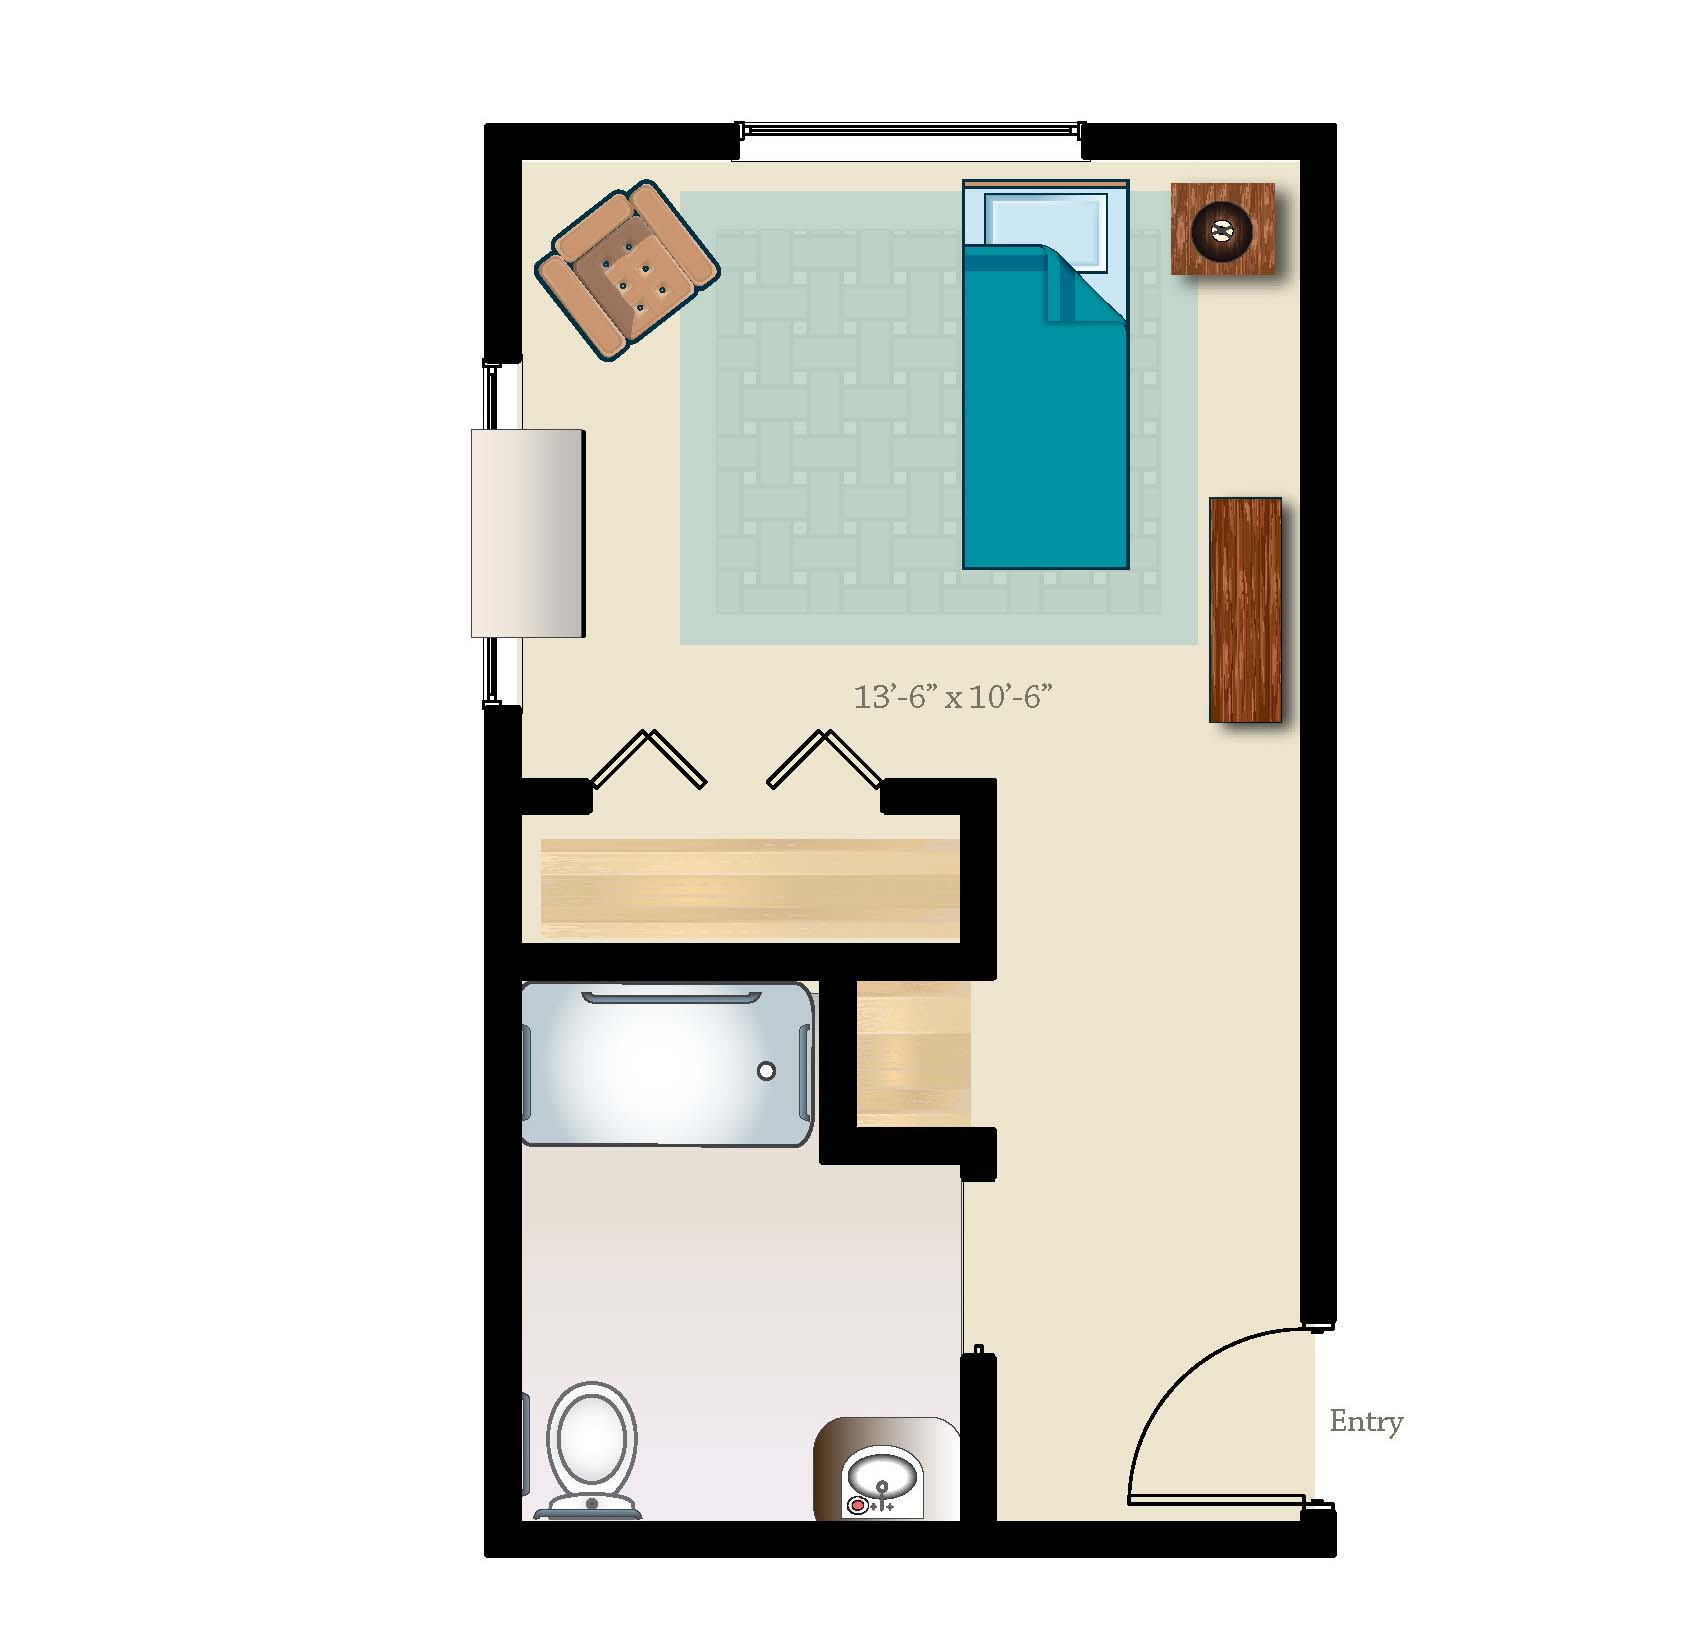 Private memory care suite layout 352 square feet